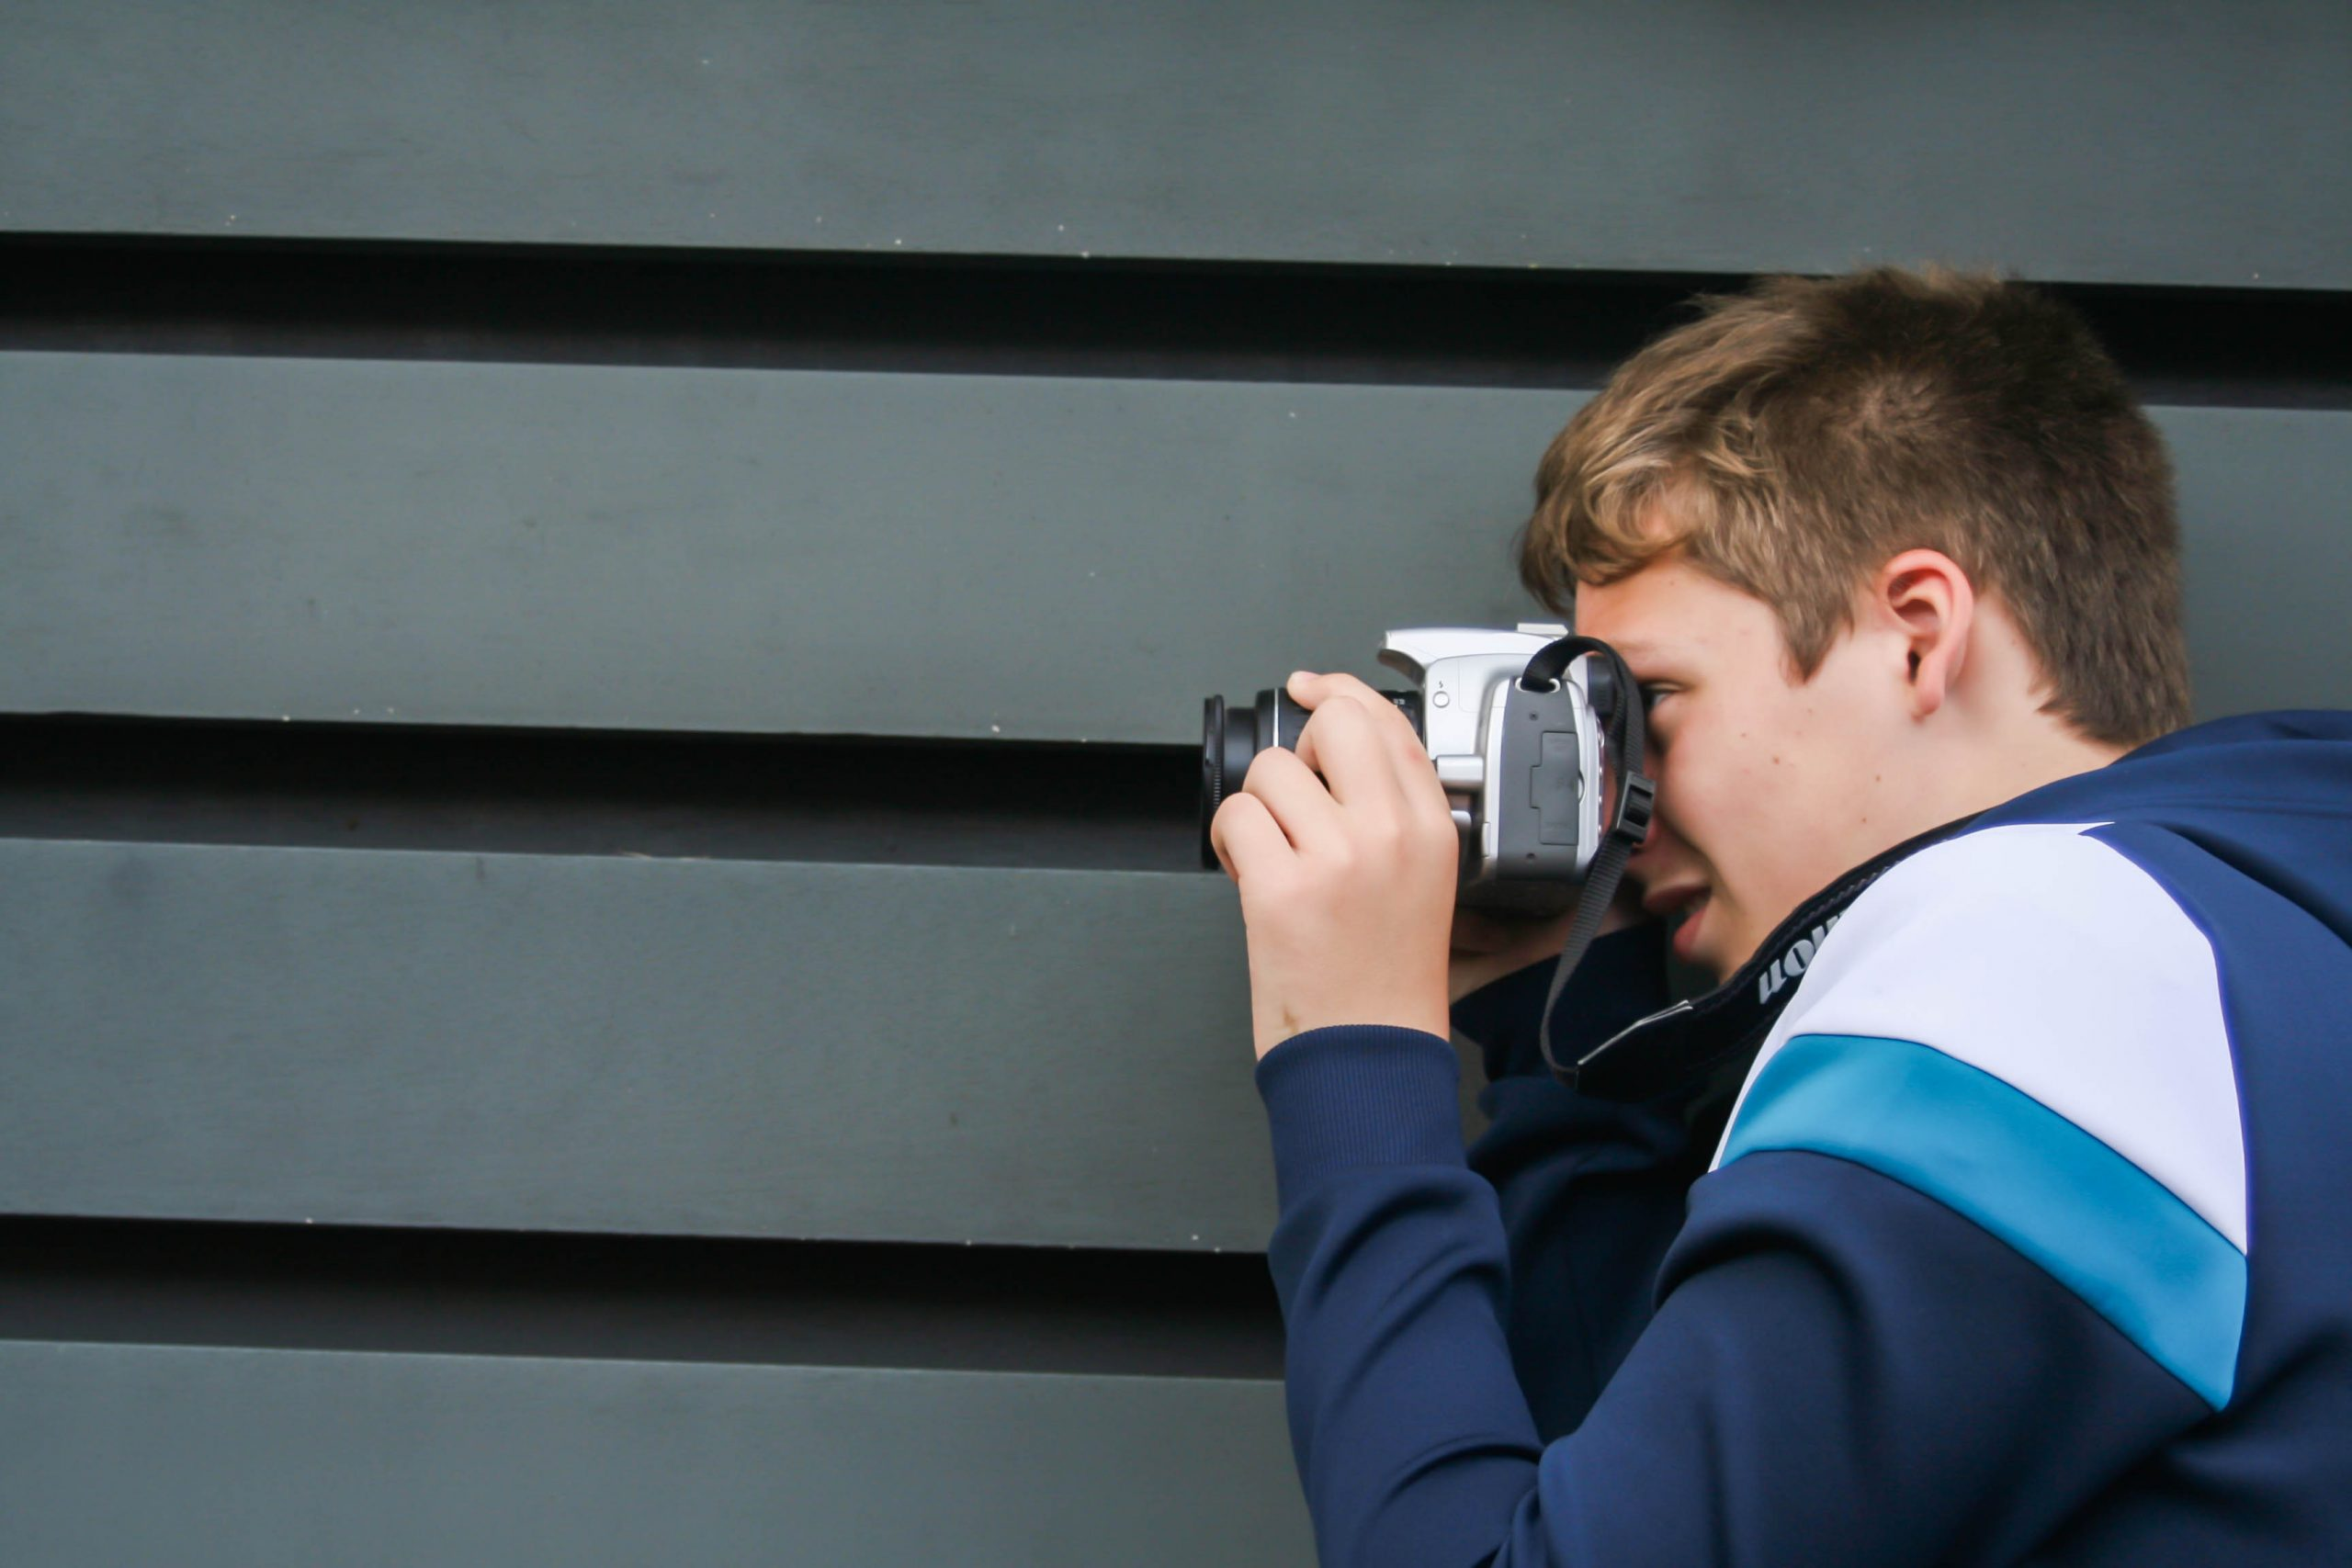 learning to use slr camera